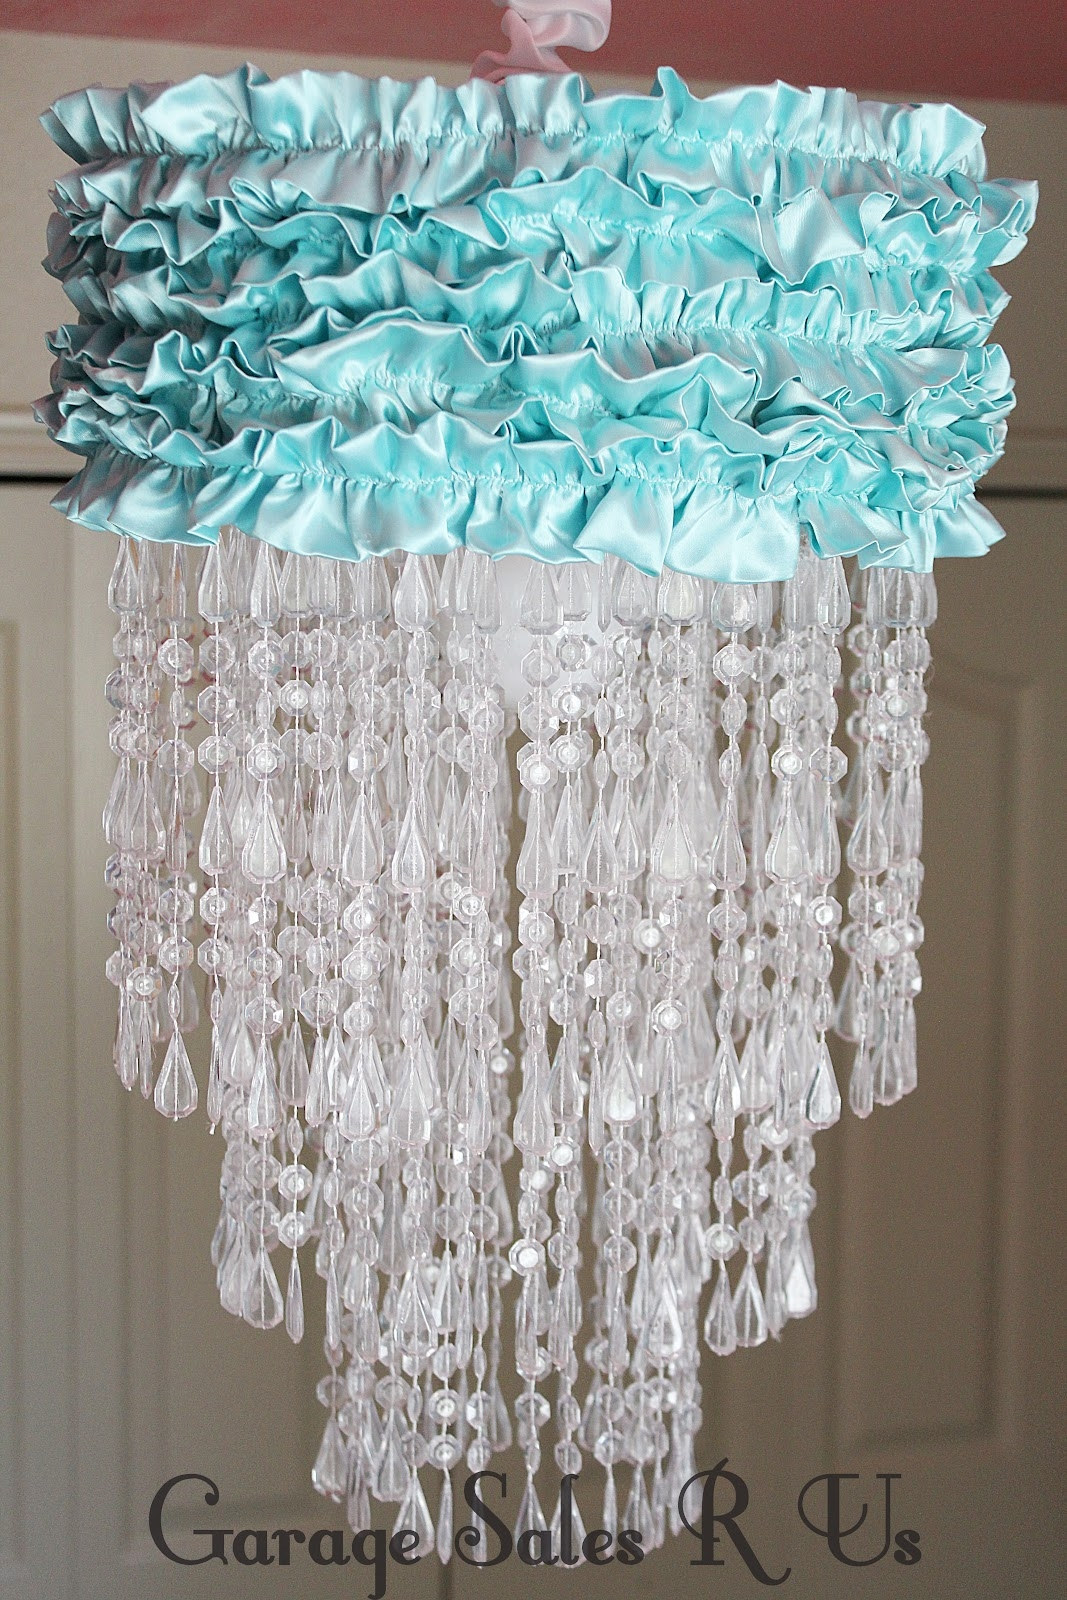 Garage Sales R Us Diy Chandelier Intended For Turquoise Chandelier Lamp Shades (Image 13 of 25)